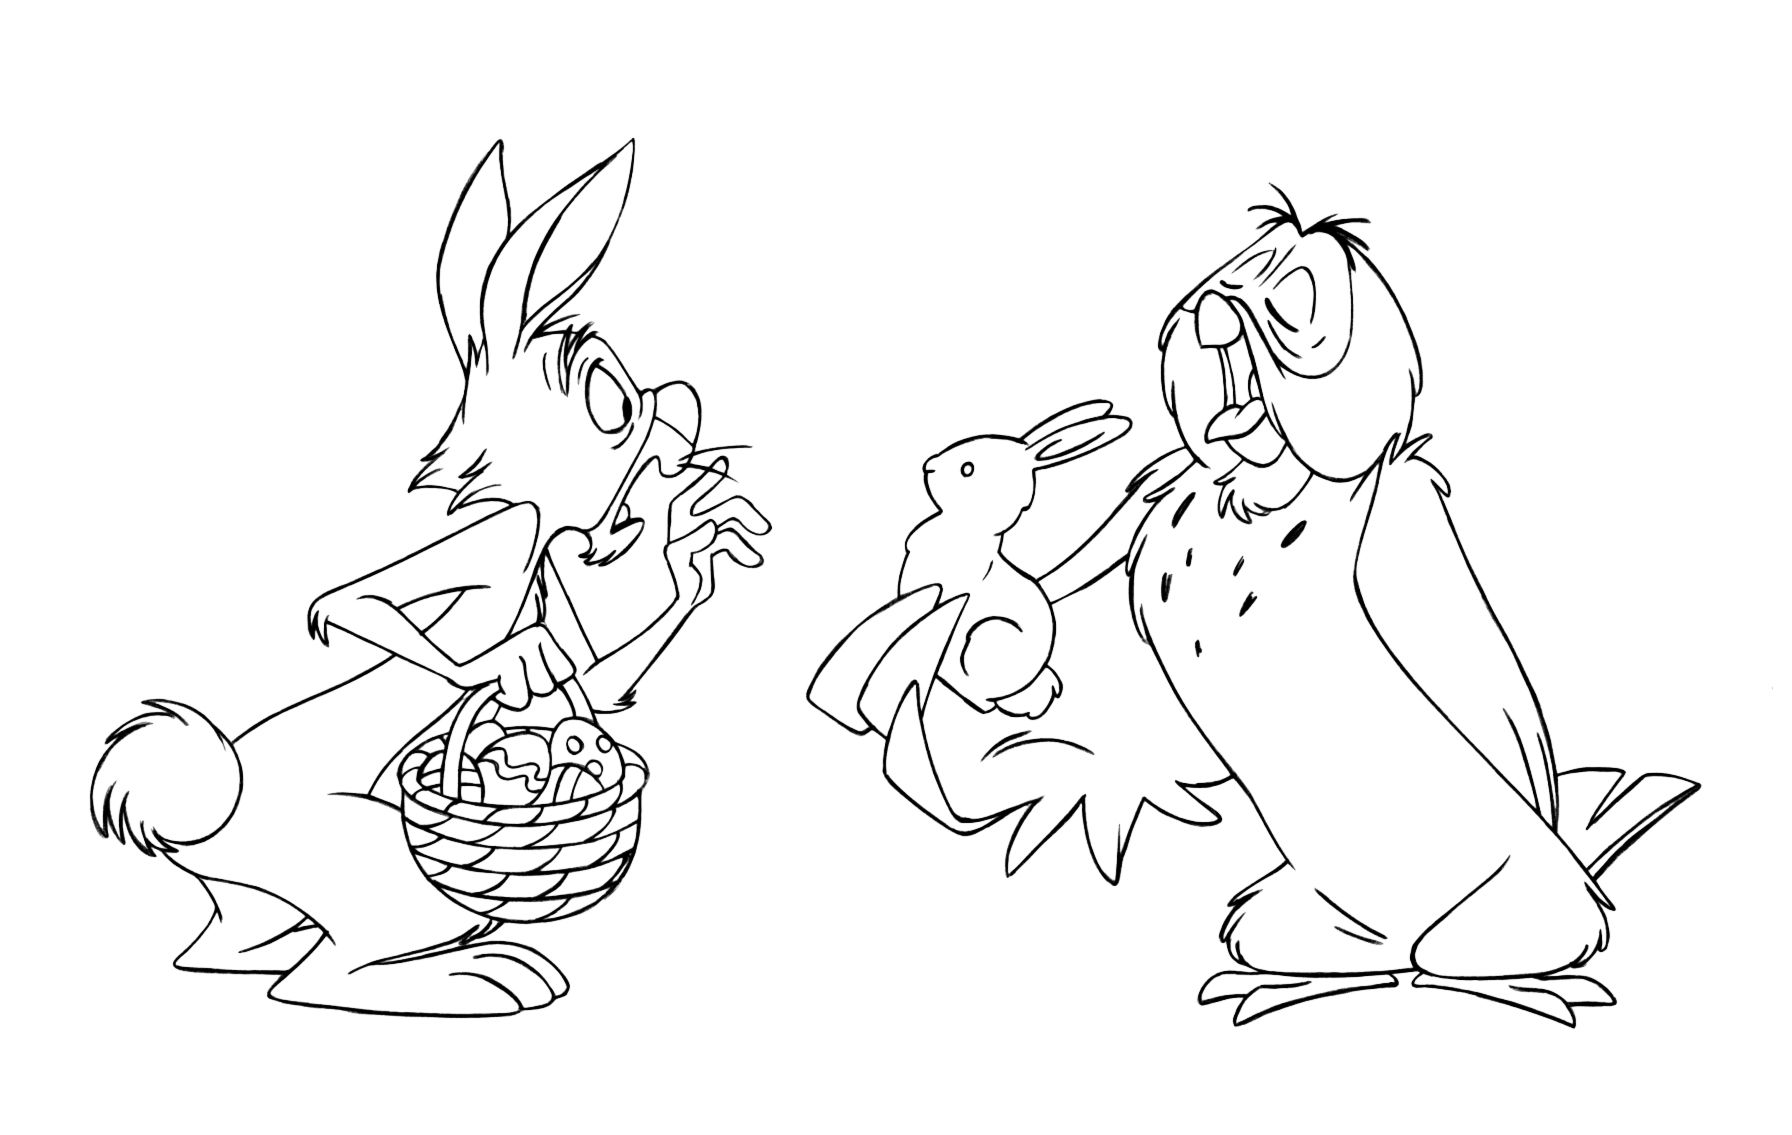 Chocolate Easter Rabbit Coloring Winnie The Pooh | Pooh and Friends ...